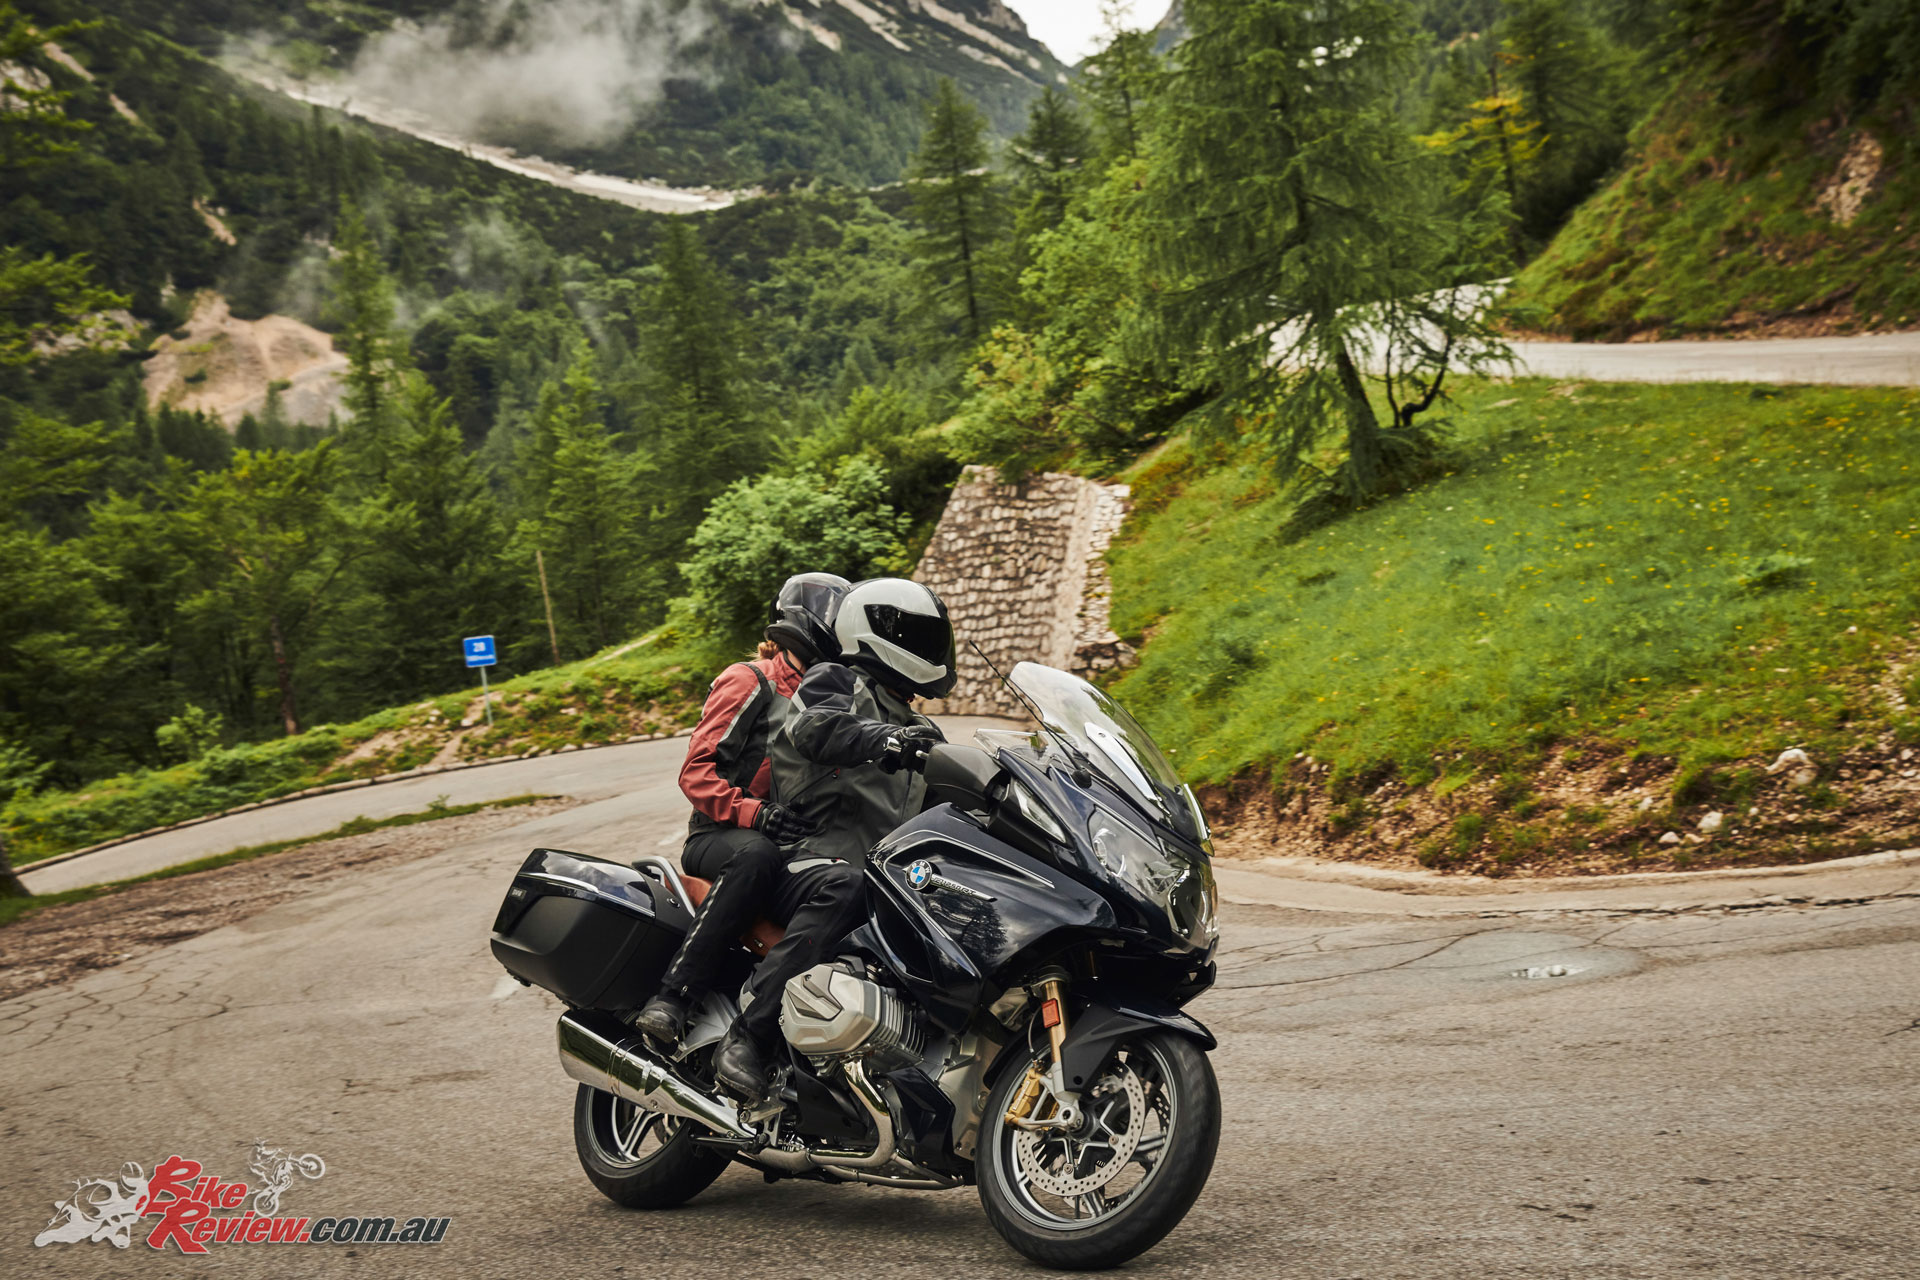 BMW's new R 1250 RT